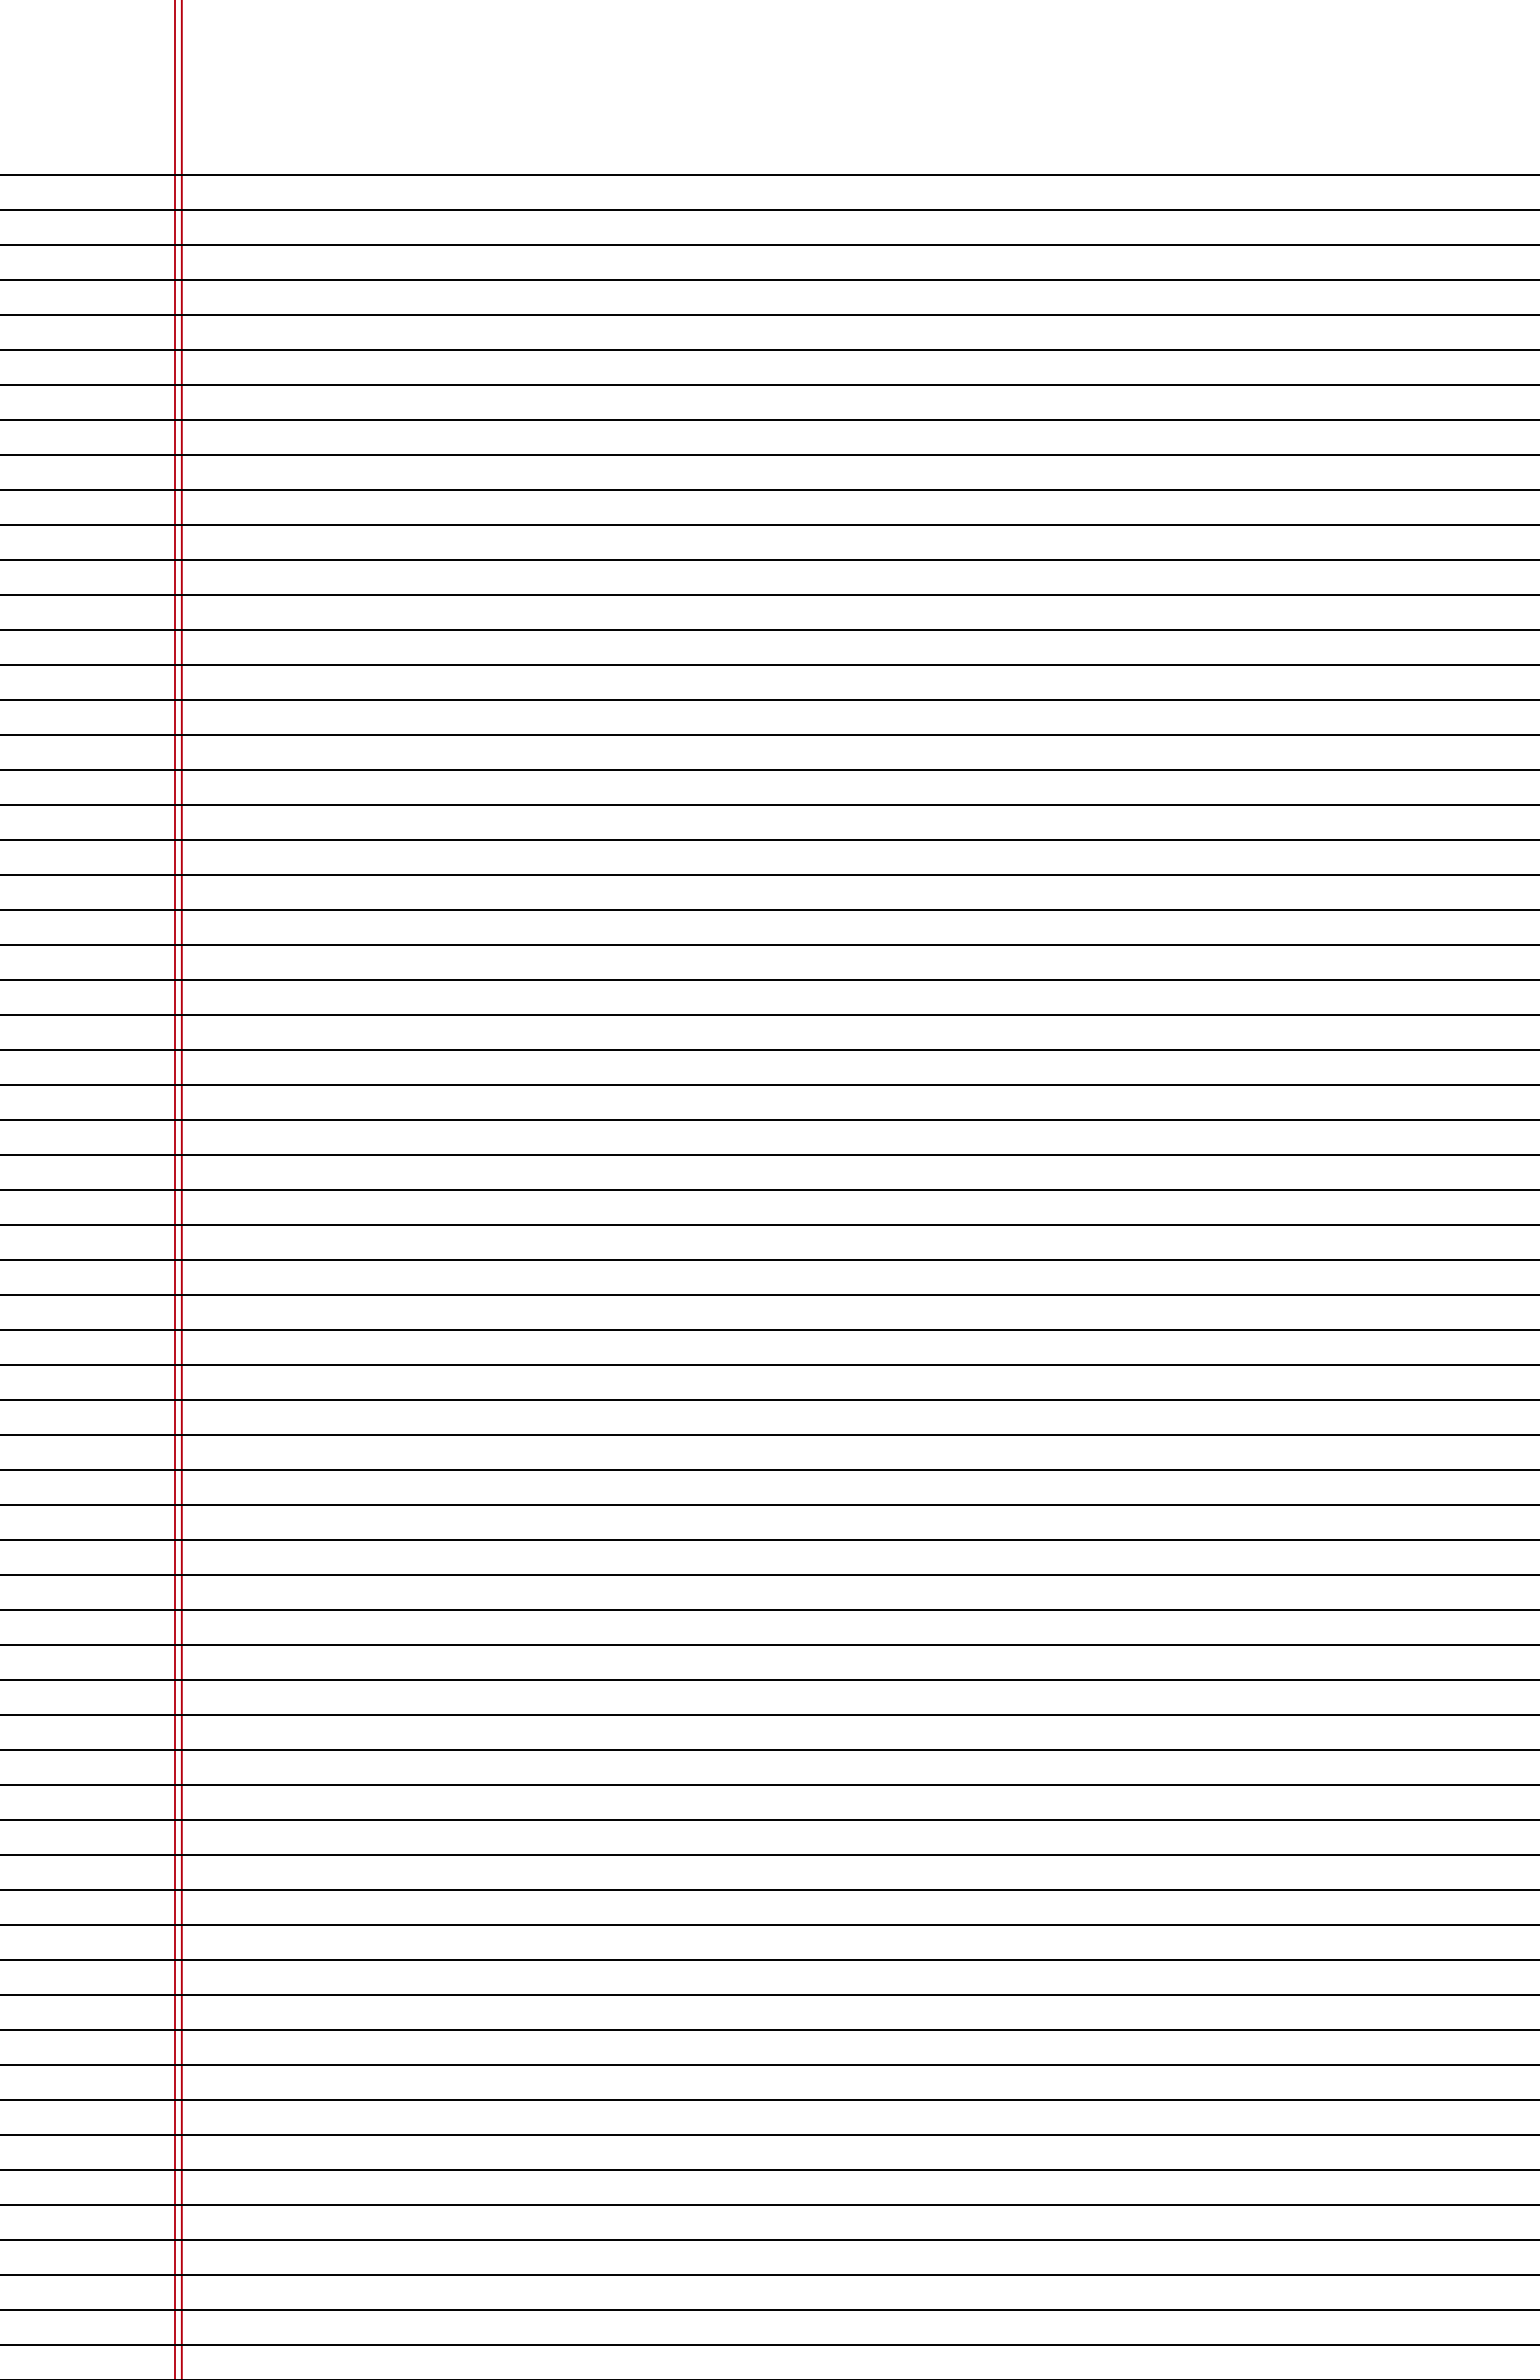 Narrow Ruled Lined Paper On Ledger Sized Paper In Portrait